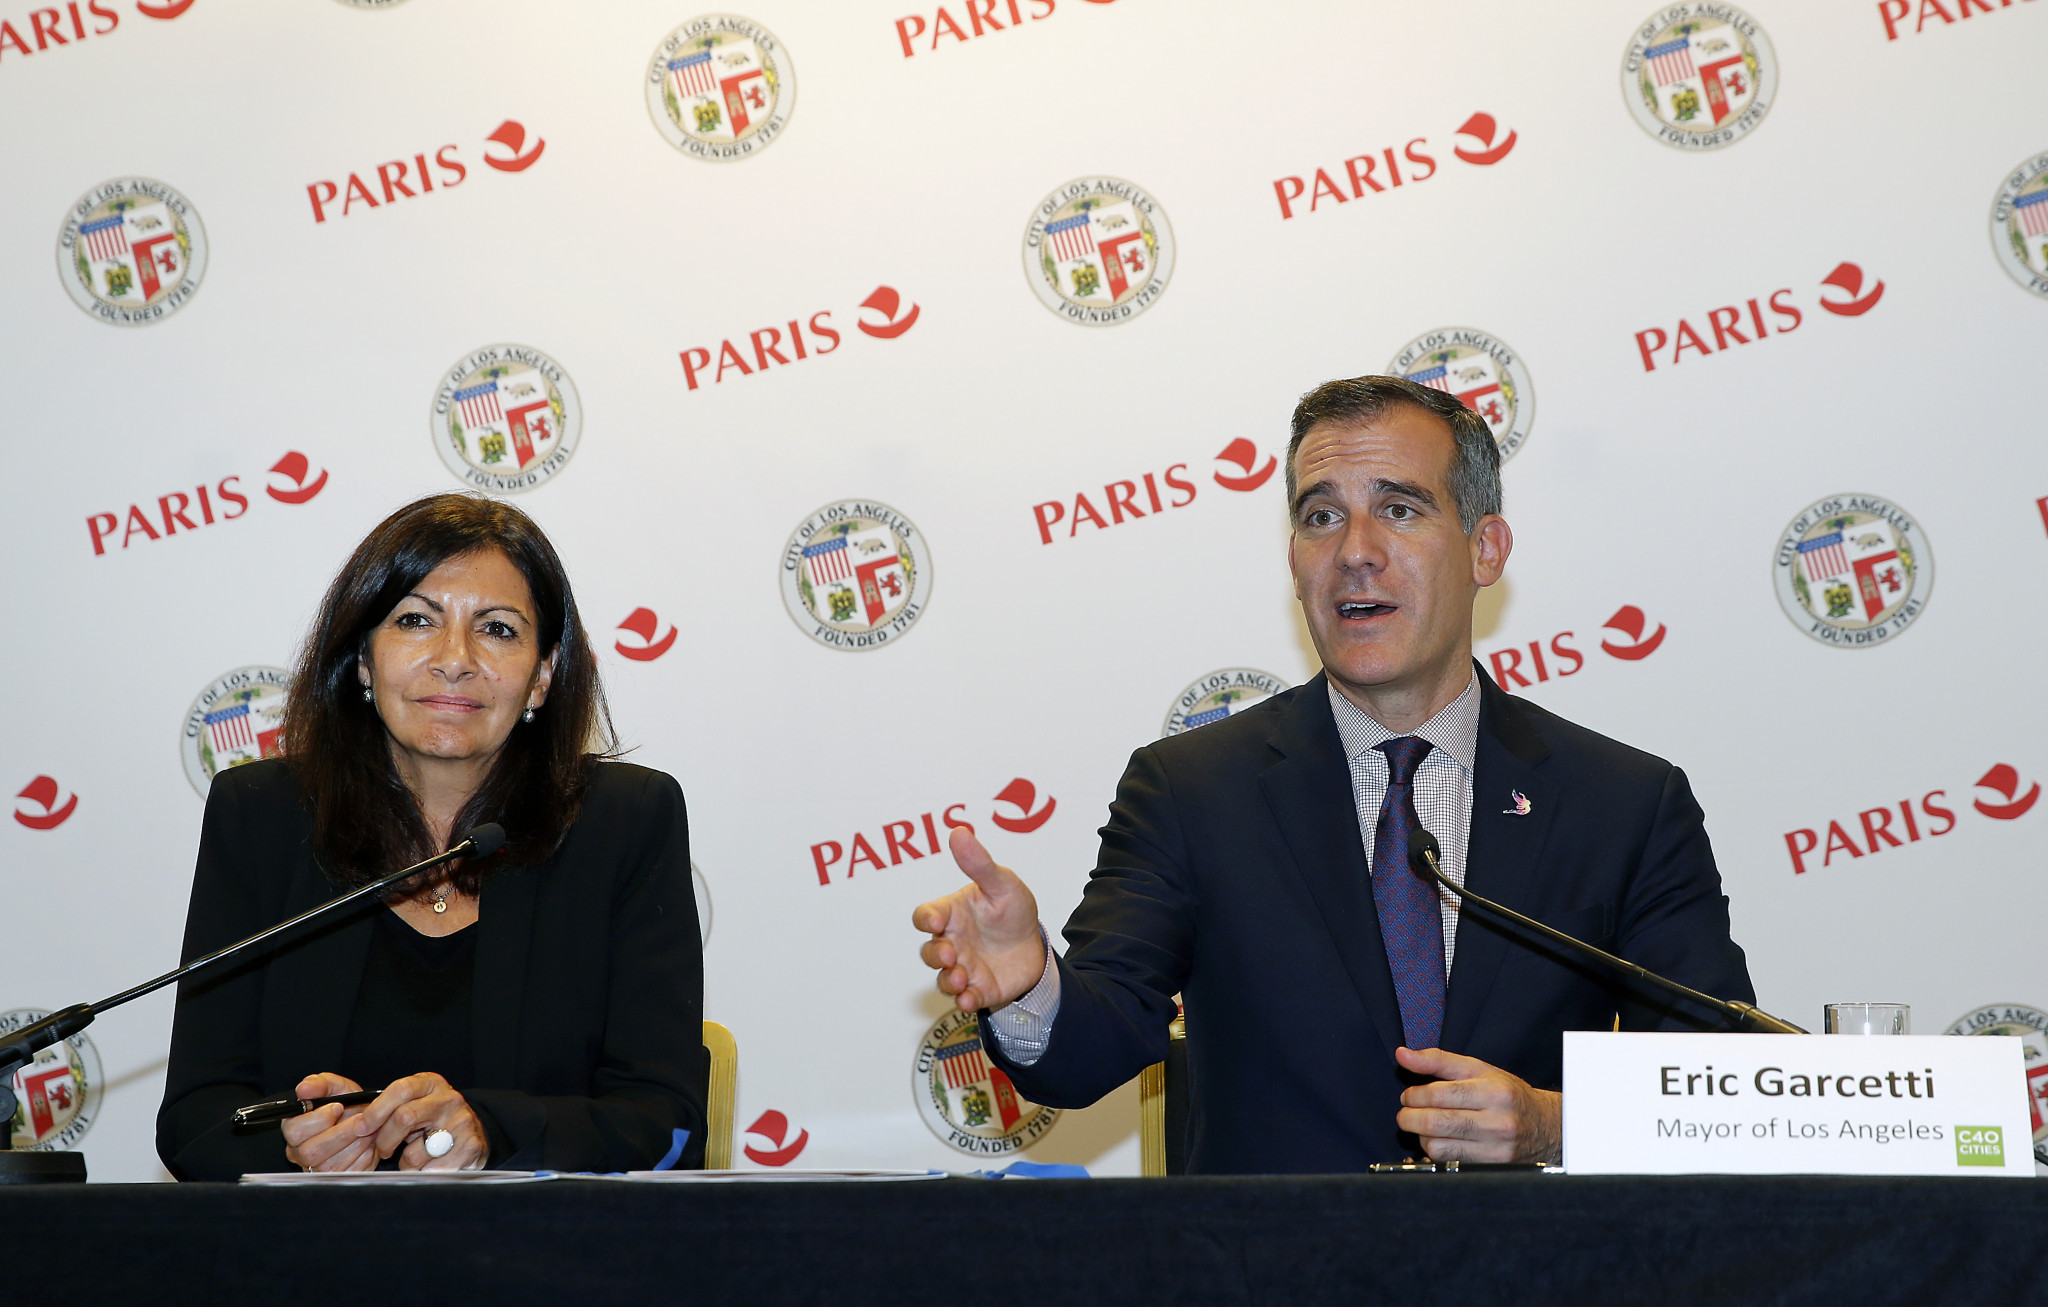 Garcetti says Los Angeles 2028 will uphold values as deal with Paris 2024 is signed